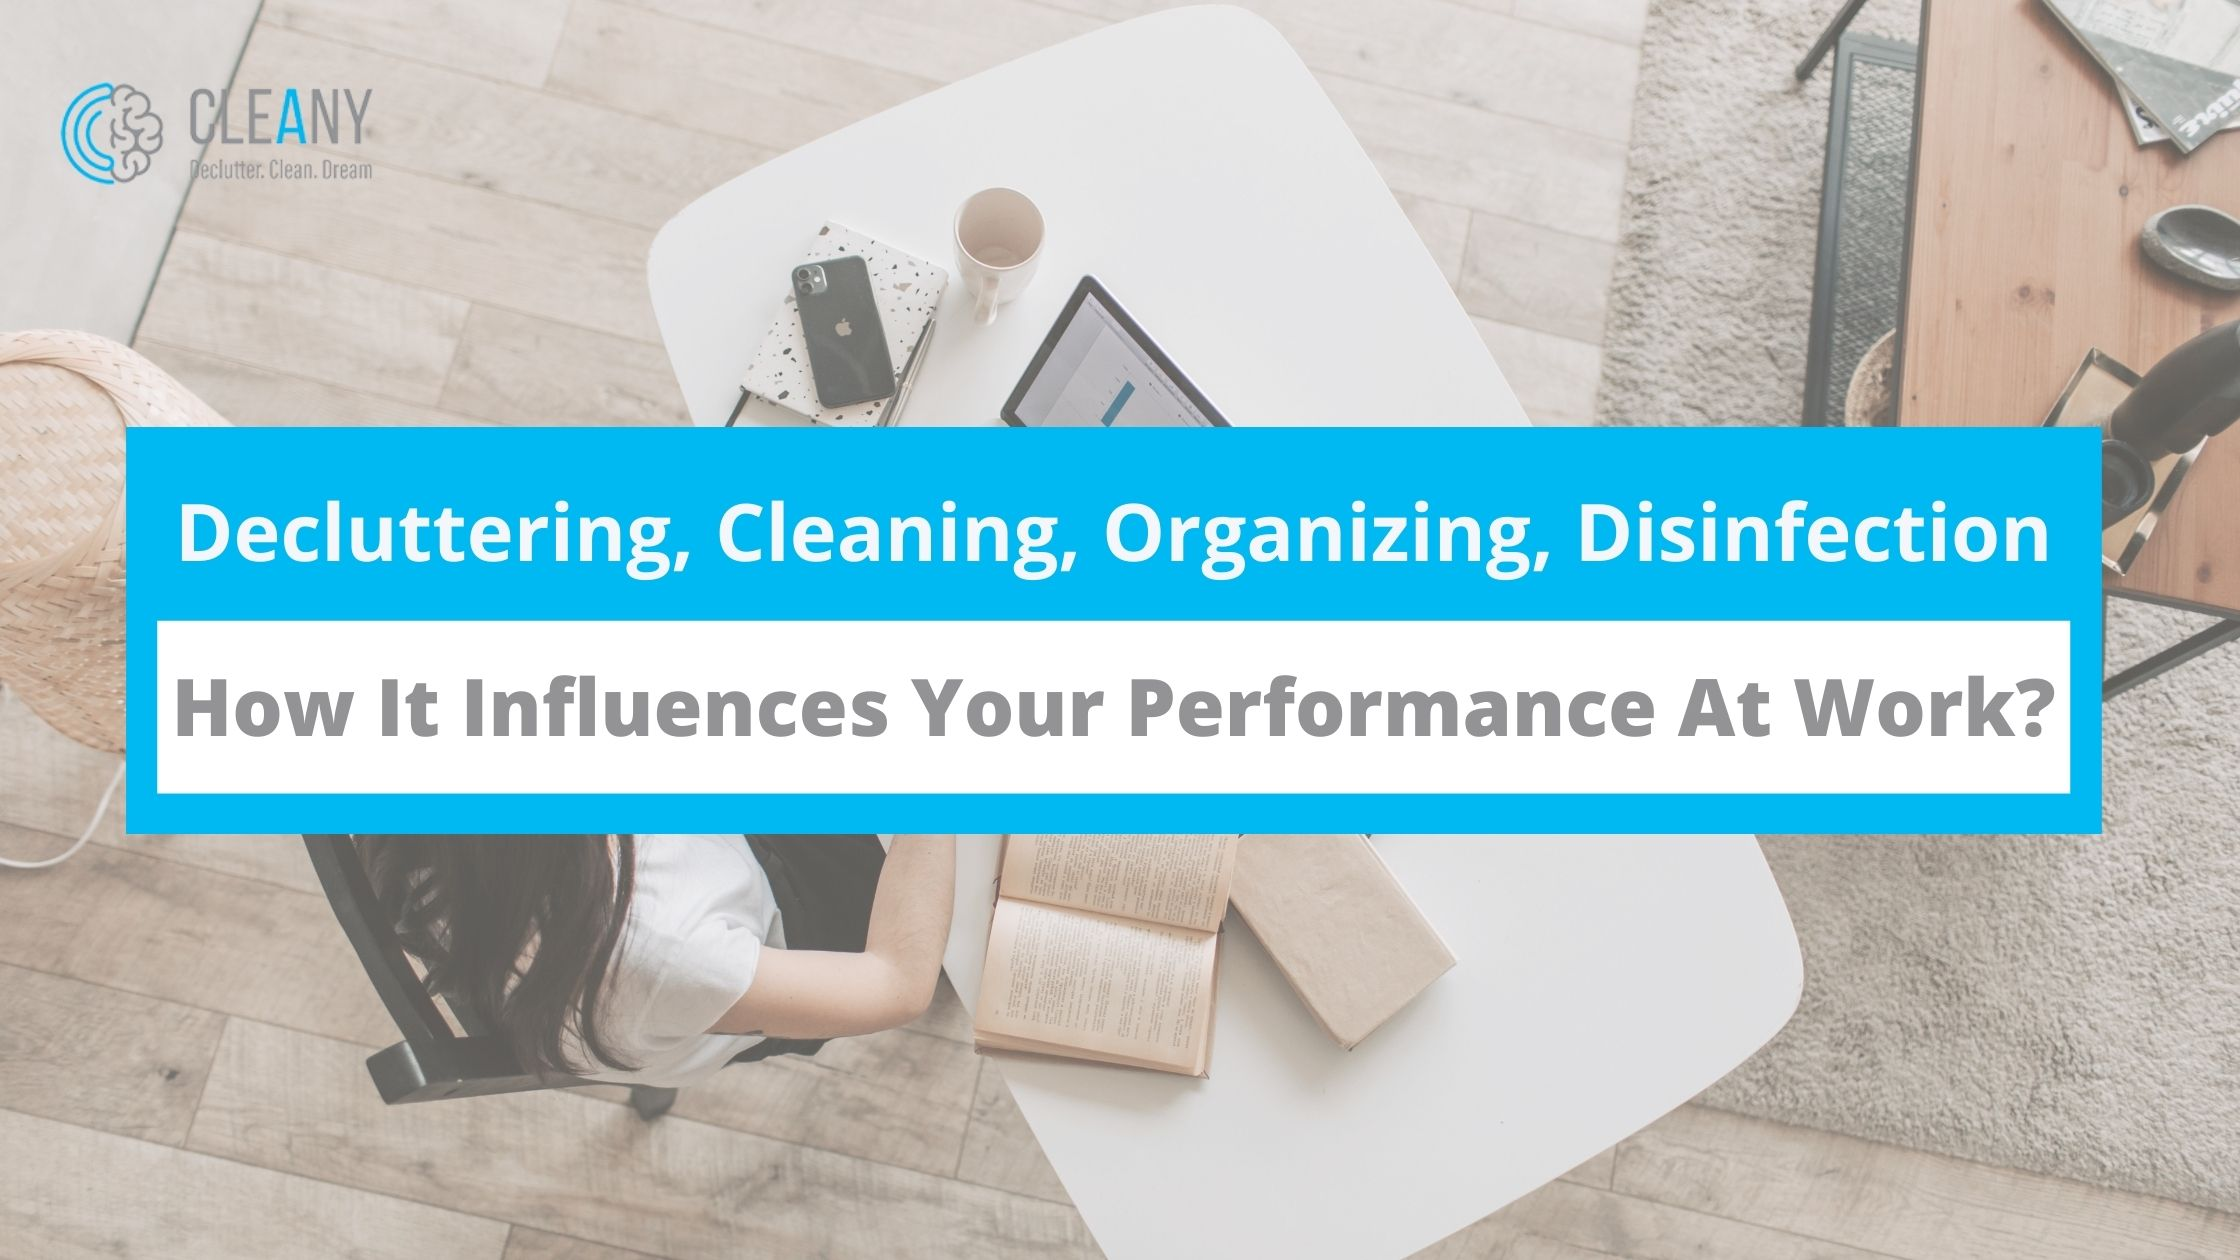 Decluttering, Cleaning, Organizing, and Disinfection, How it Influence Your Performance At Work_